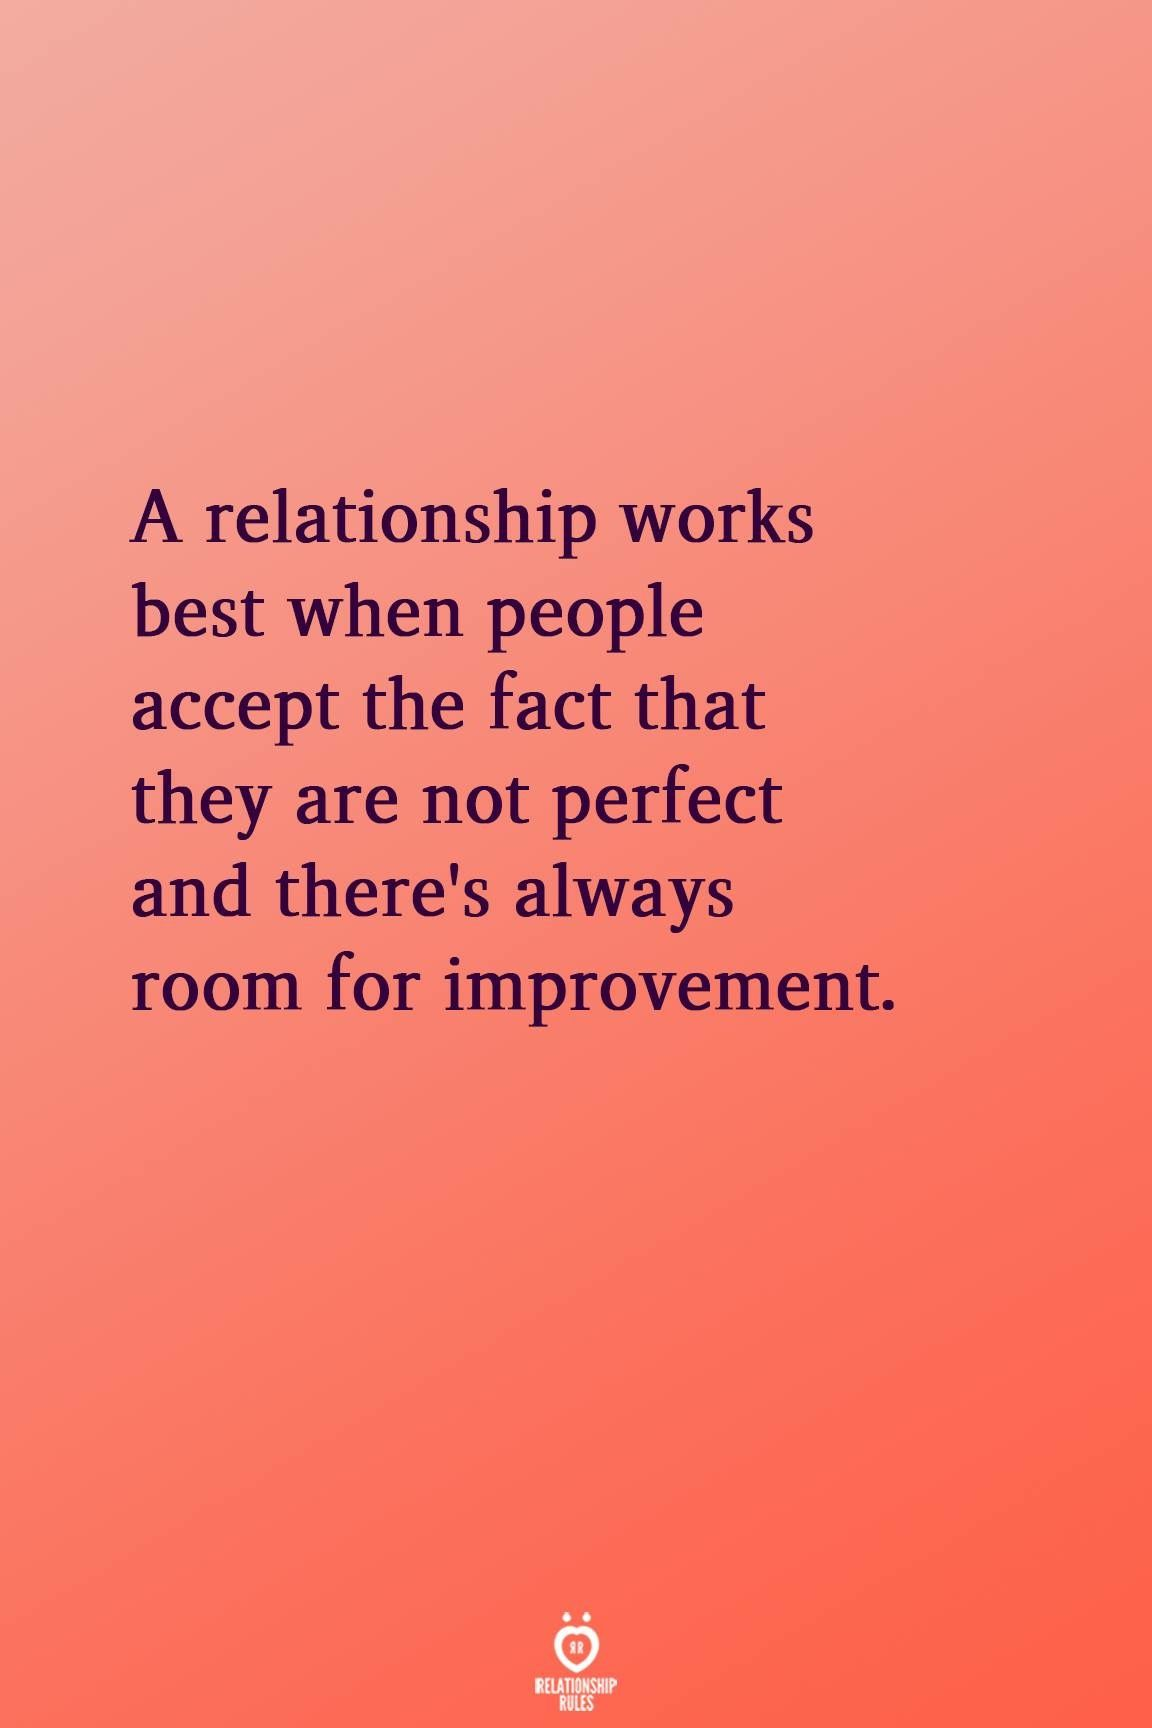 Pin By Christina Ramos On I Love Words Funny Dating Quotes Quotes About Love And Relationships Quotes